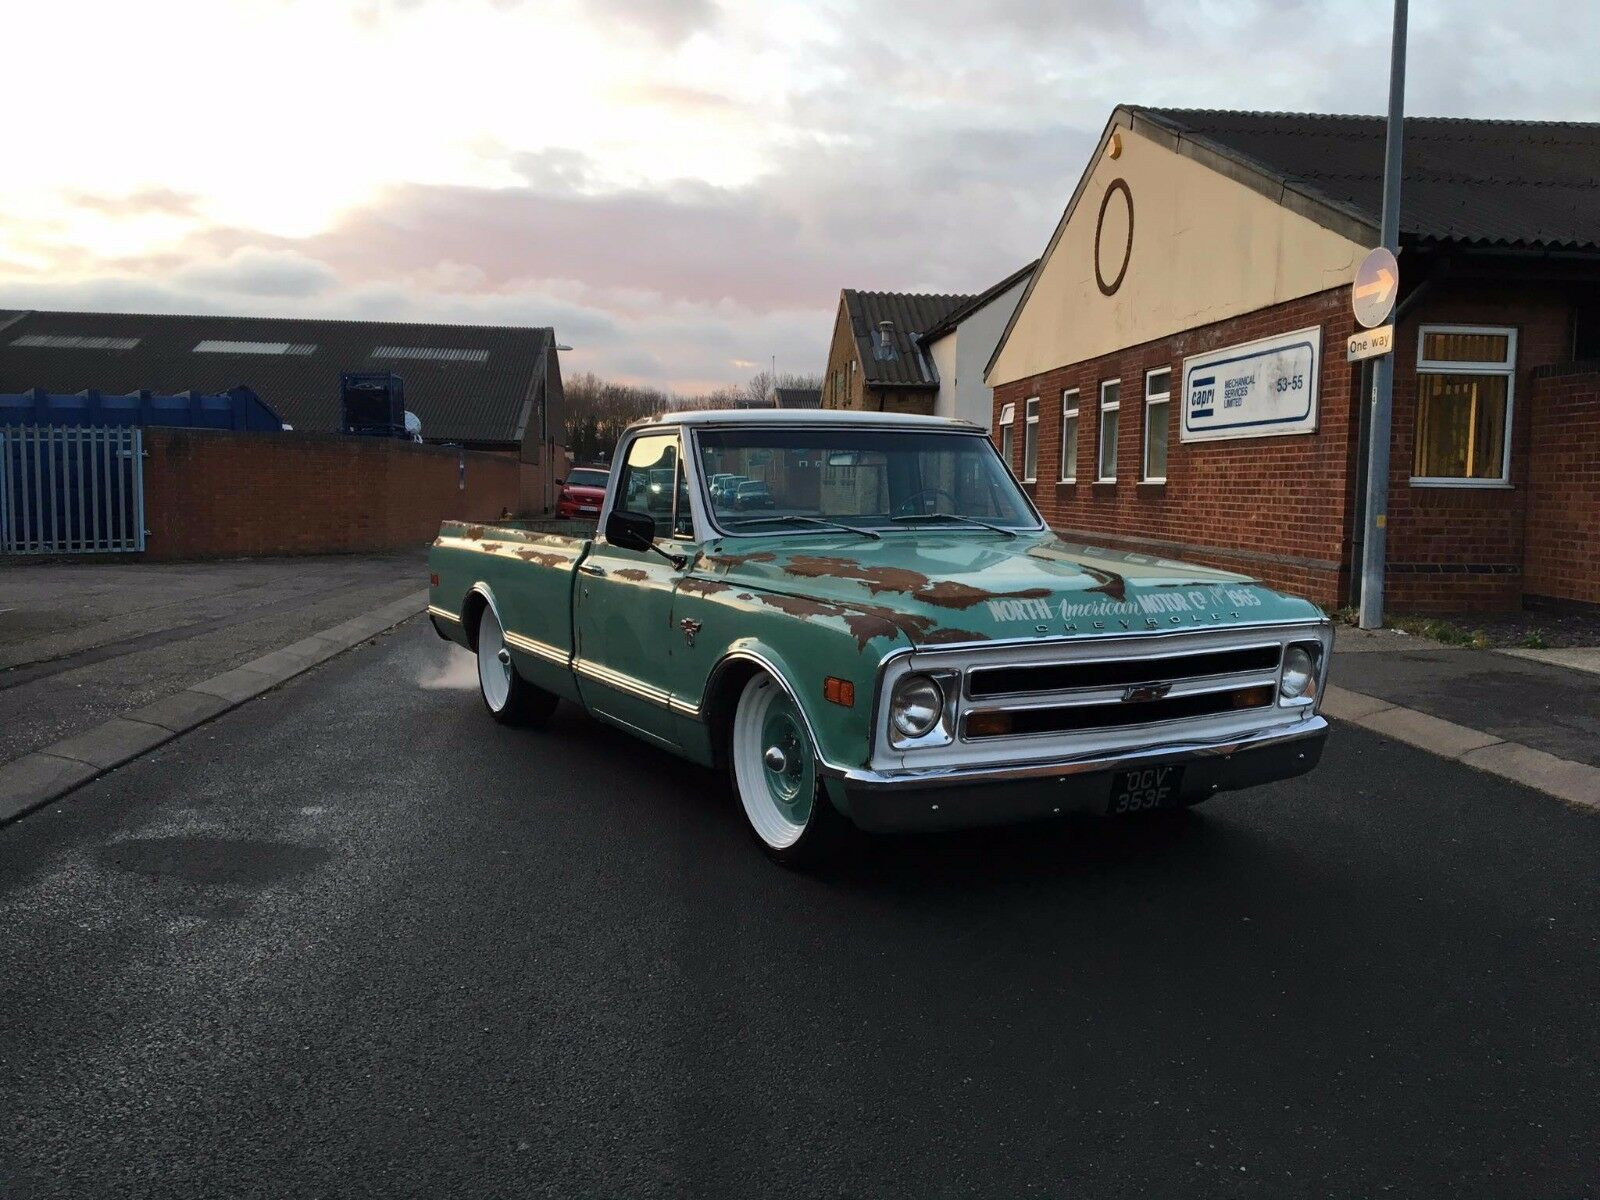 1968 Chevy C10 Truck Hotrod Patina Ratty 1325000 Picclick Uk Stepside 1 Of 9 See More